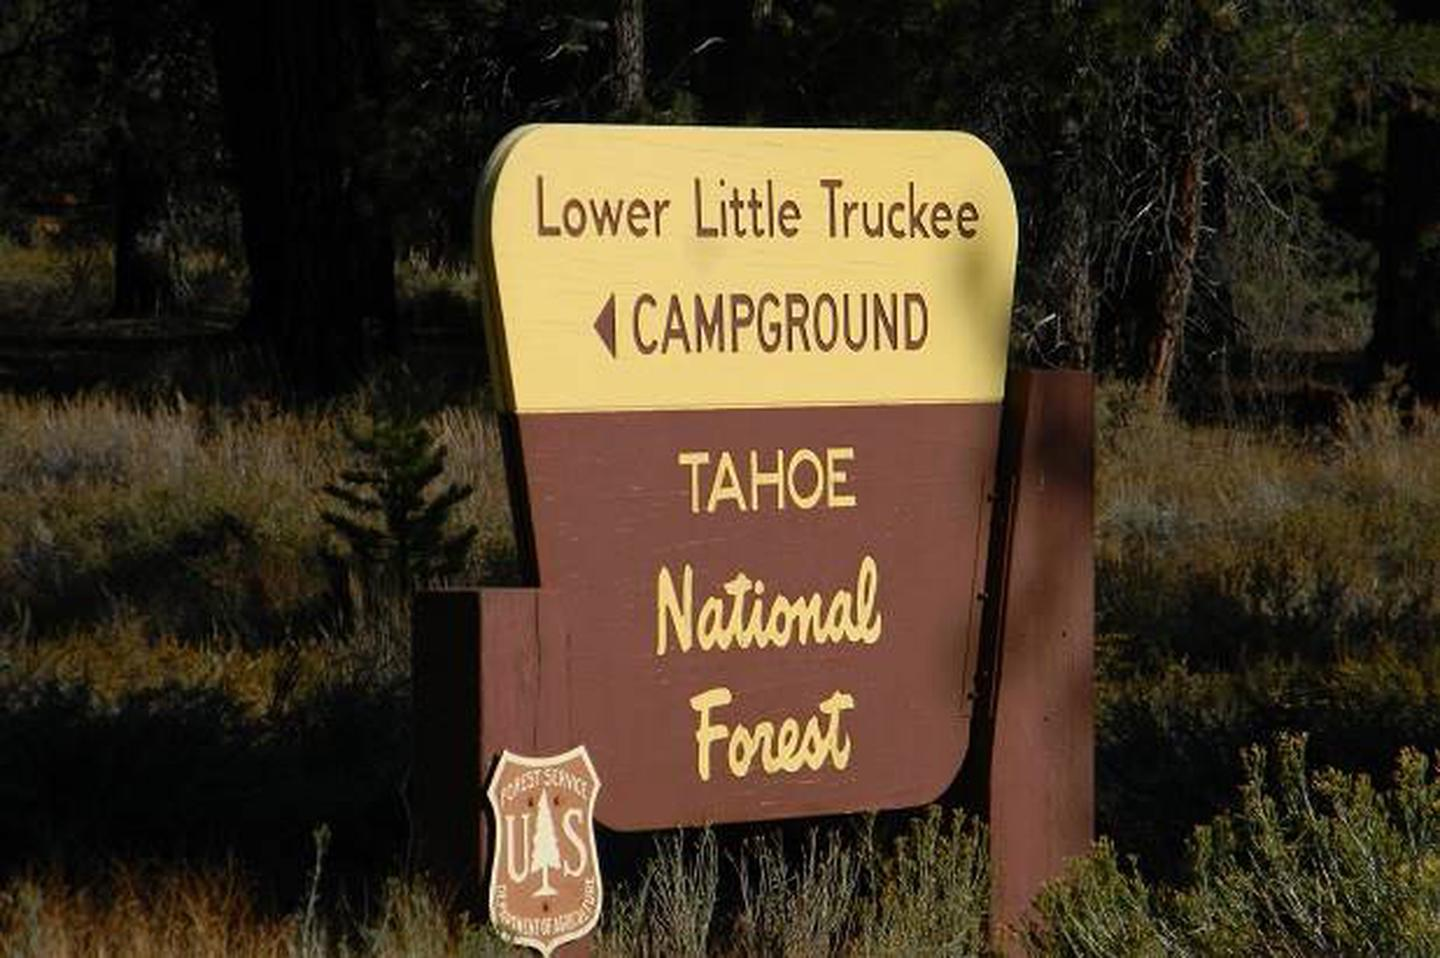 Entrance sign along Hwy 89 to the Lower Little Truckee campground.